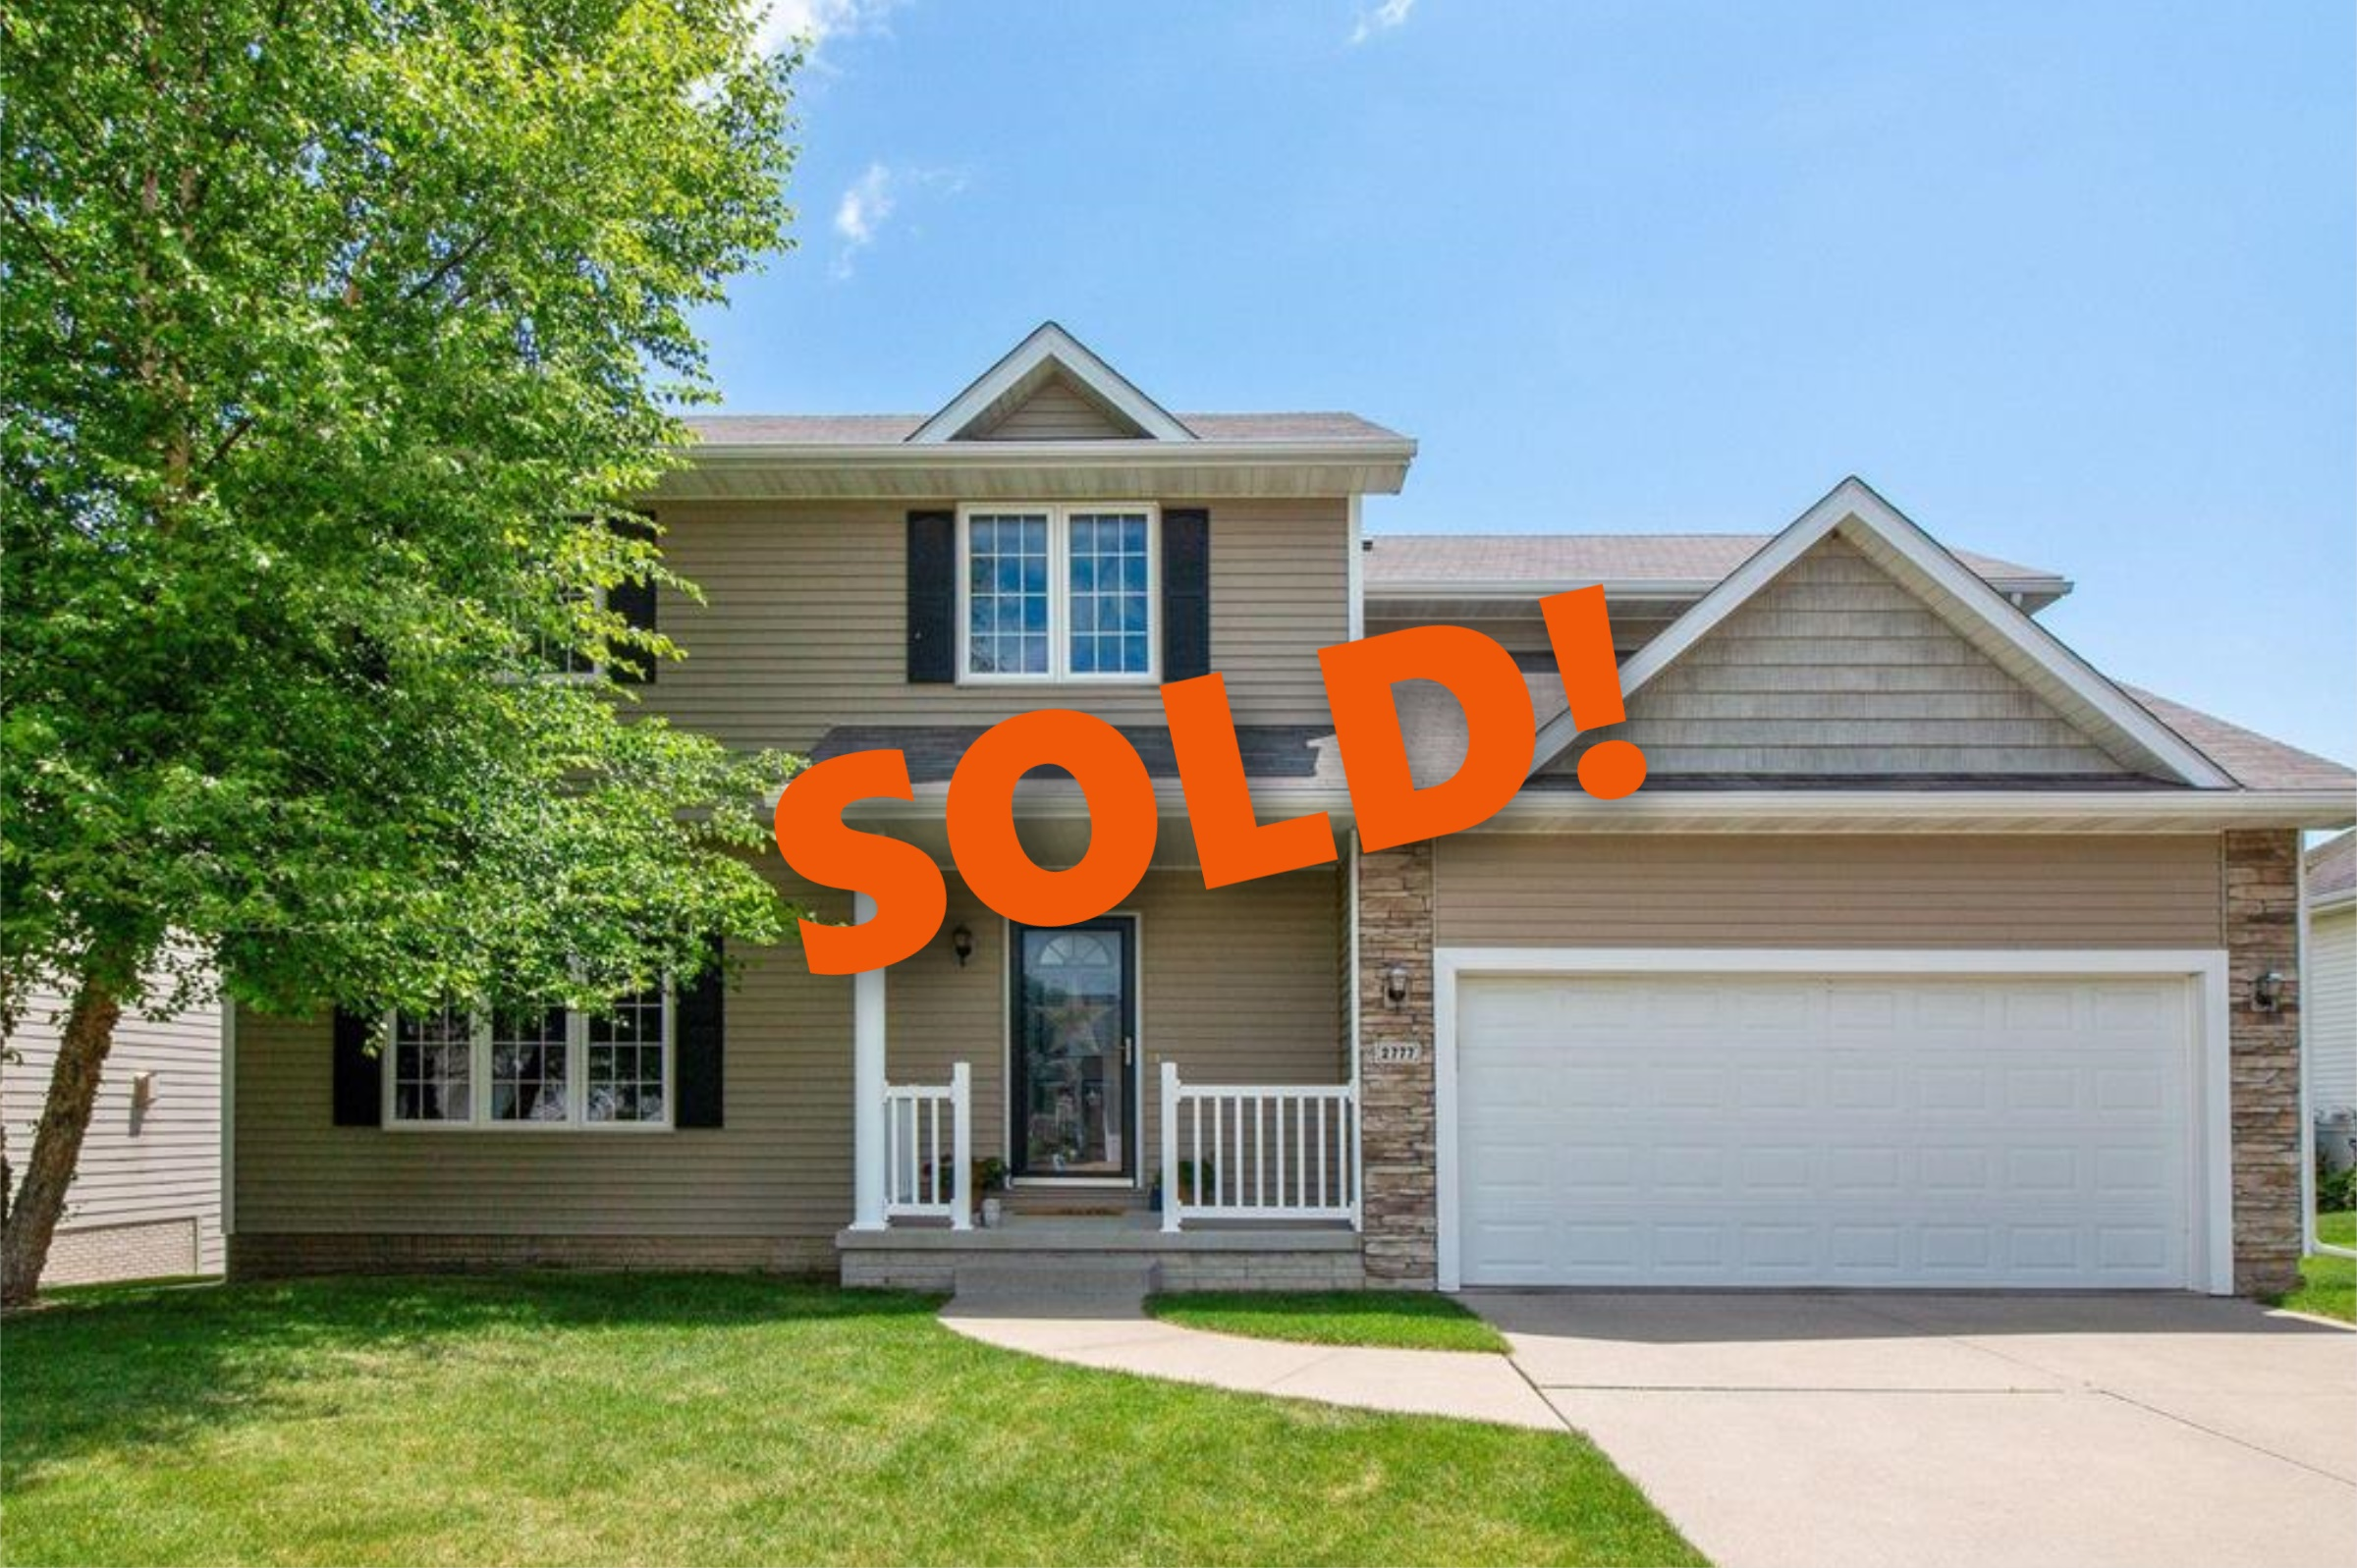 JUST SOLD in Clive!